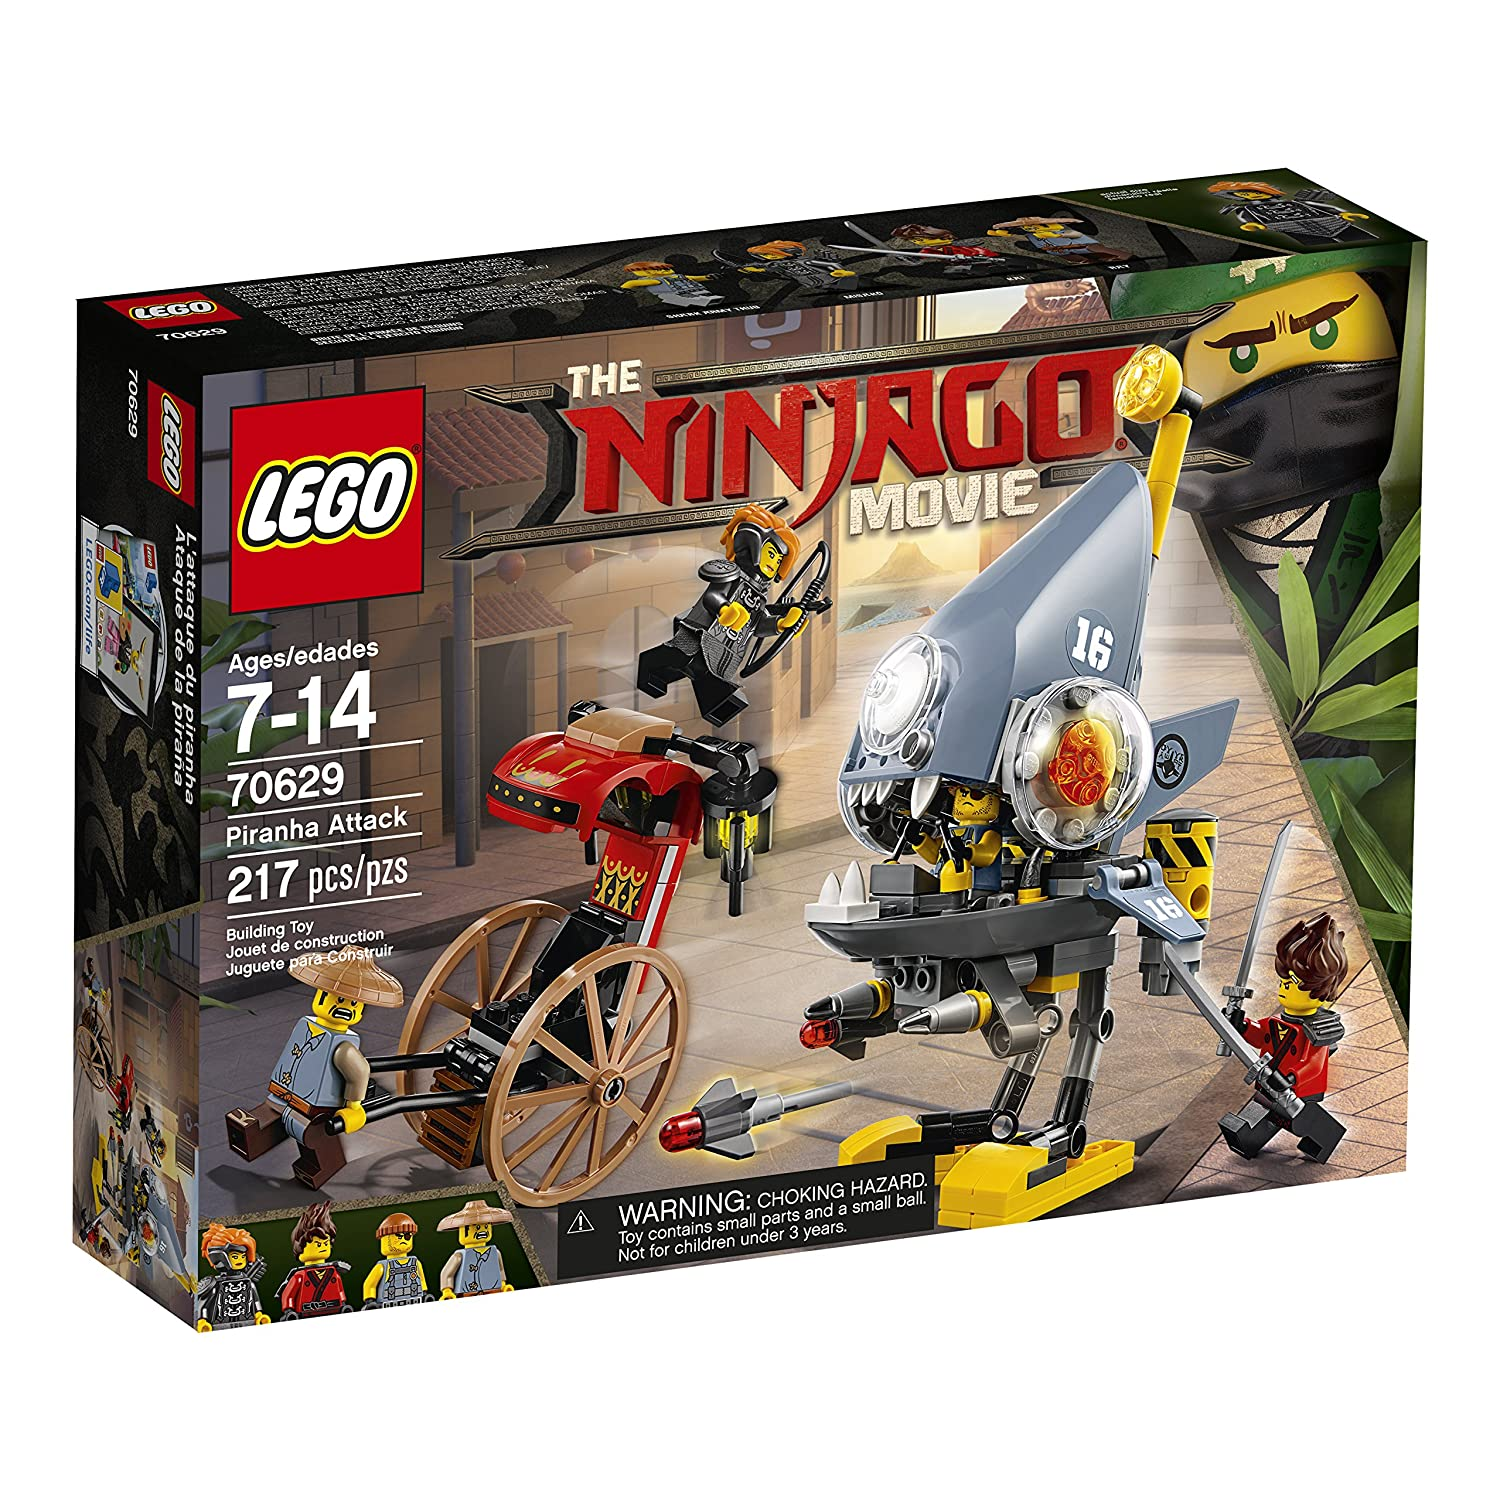 Amazon Building Toys Toys & Games Building Sets Stacking